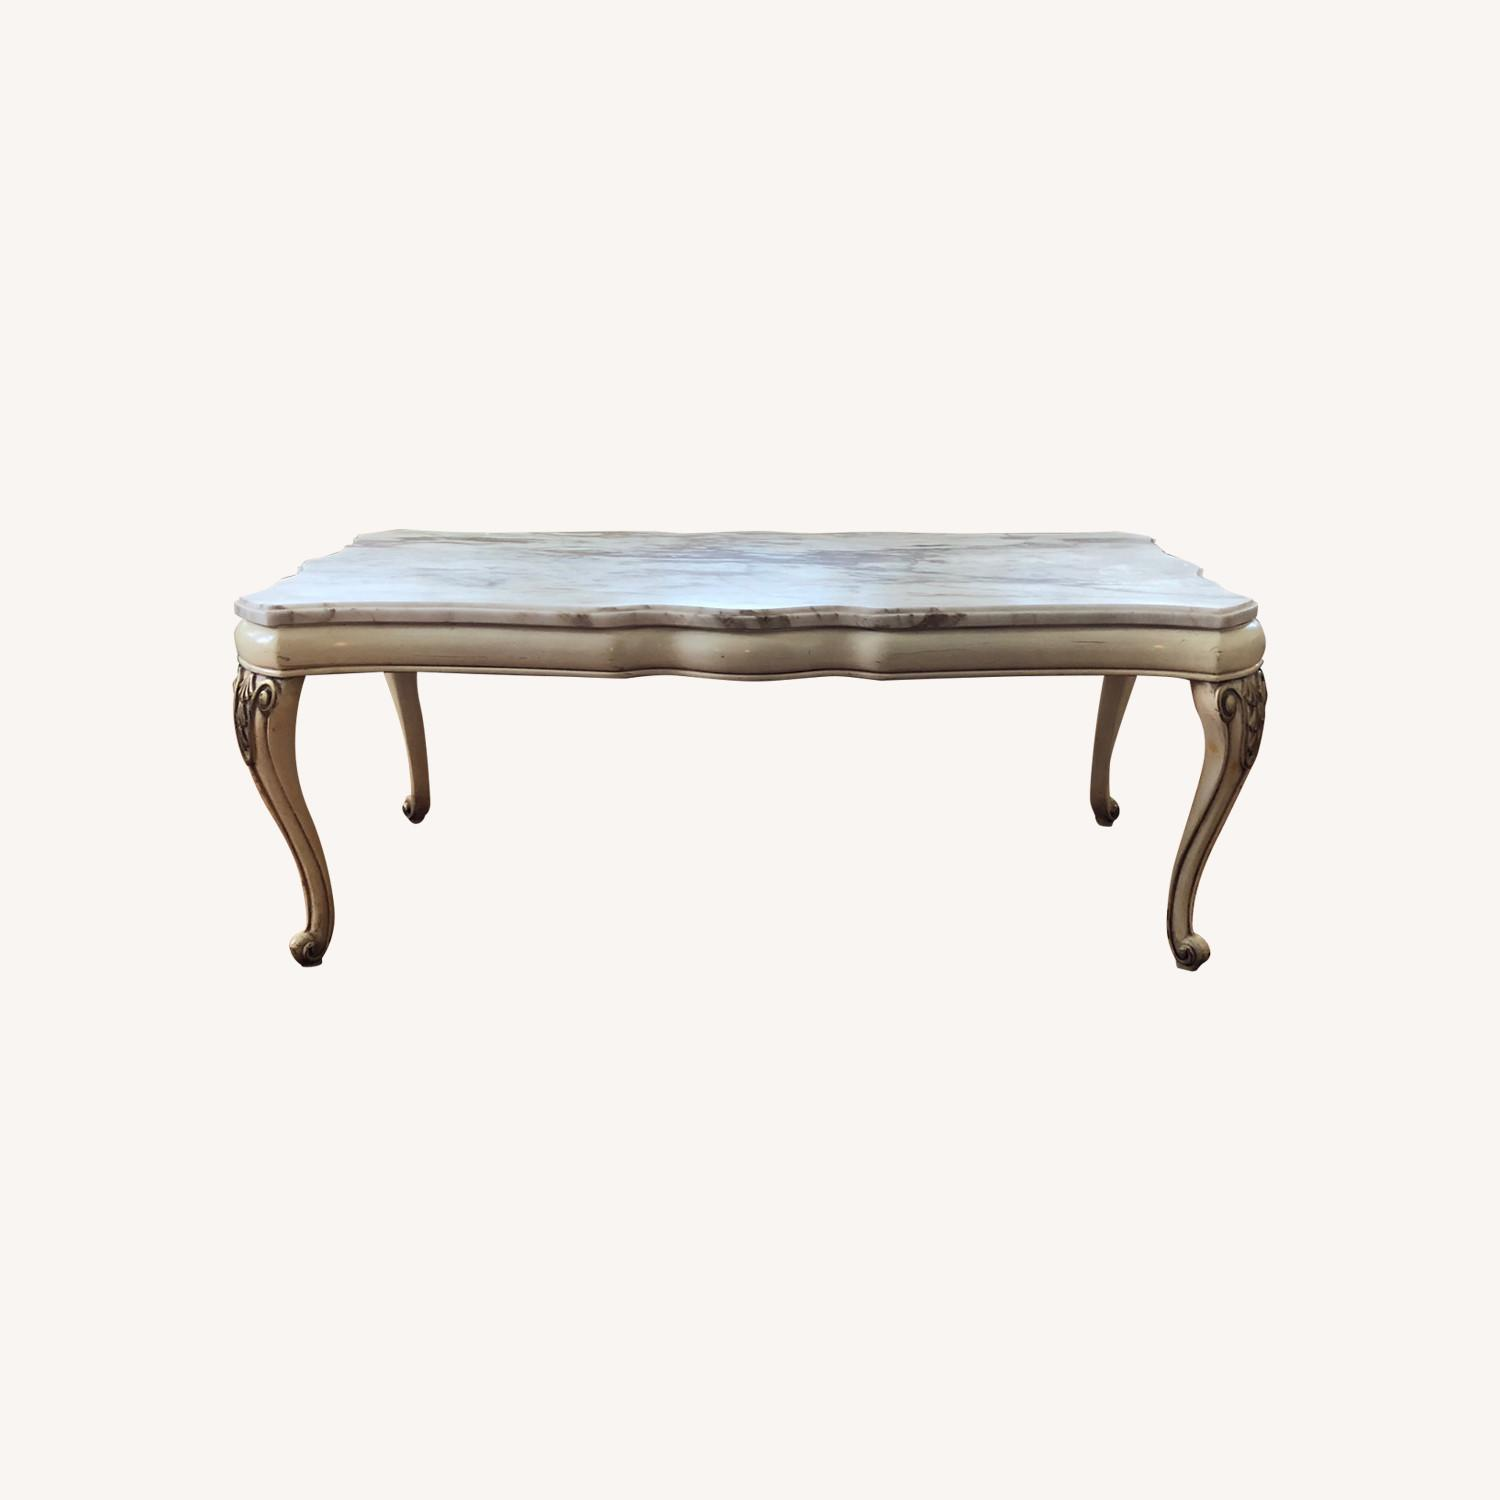 Italian 5 Piece Marble Top Tables - image-0